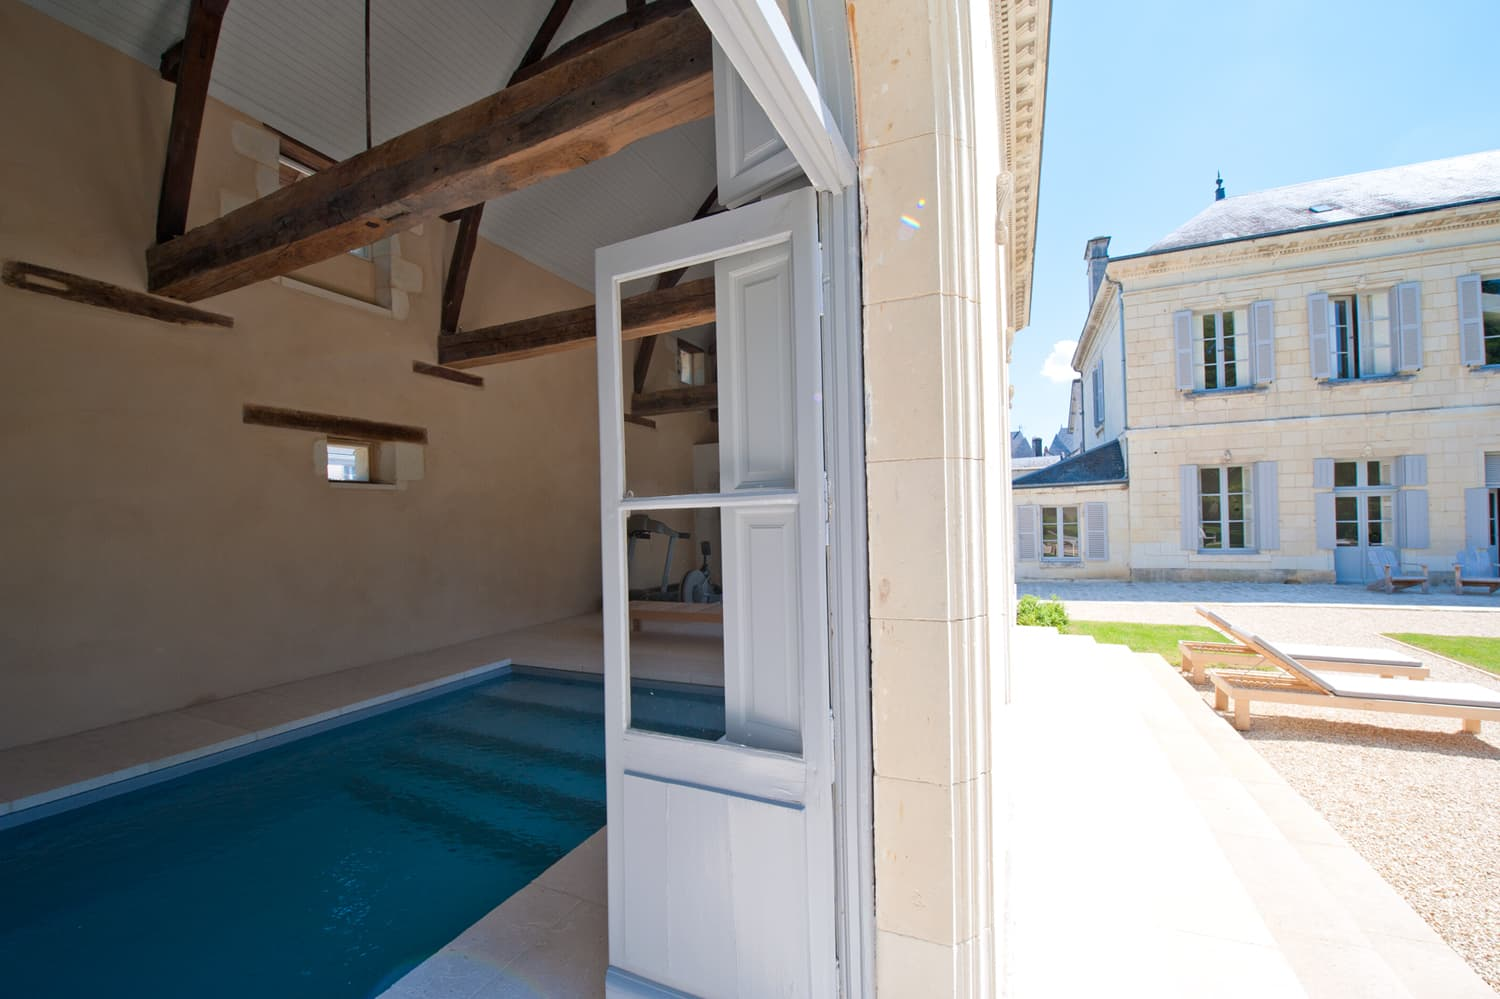 Pool-house with private, heated pool